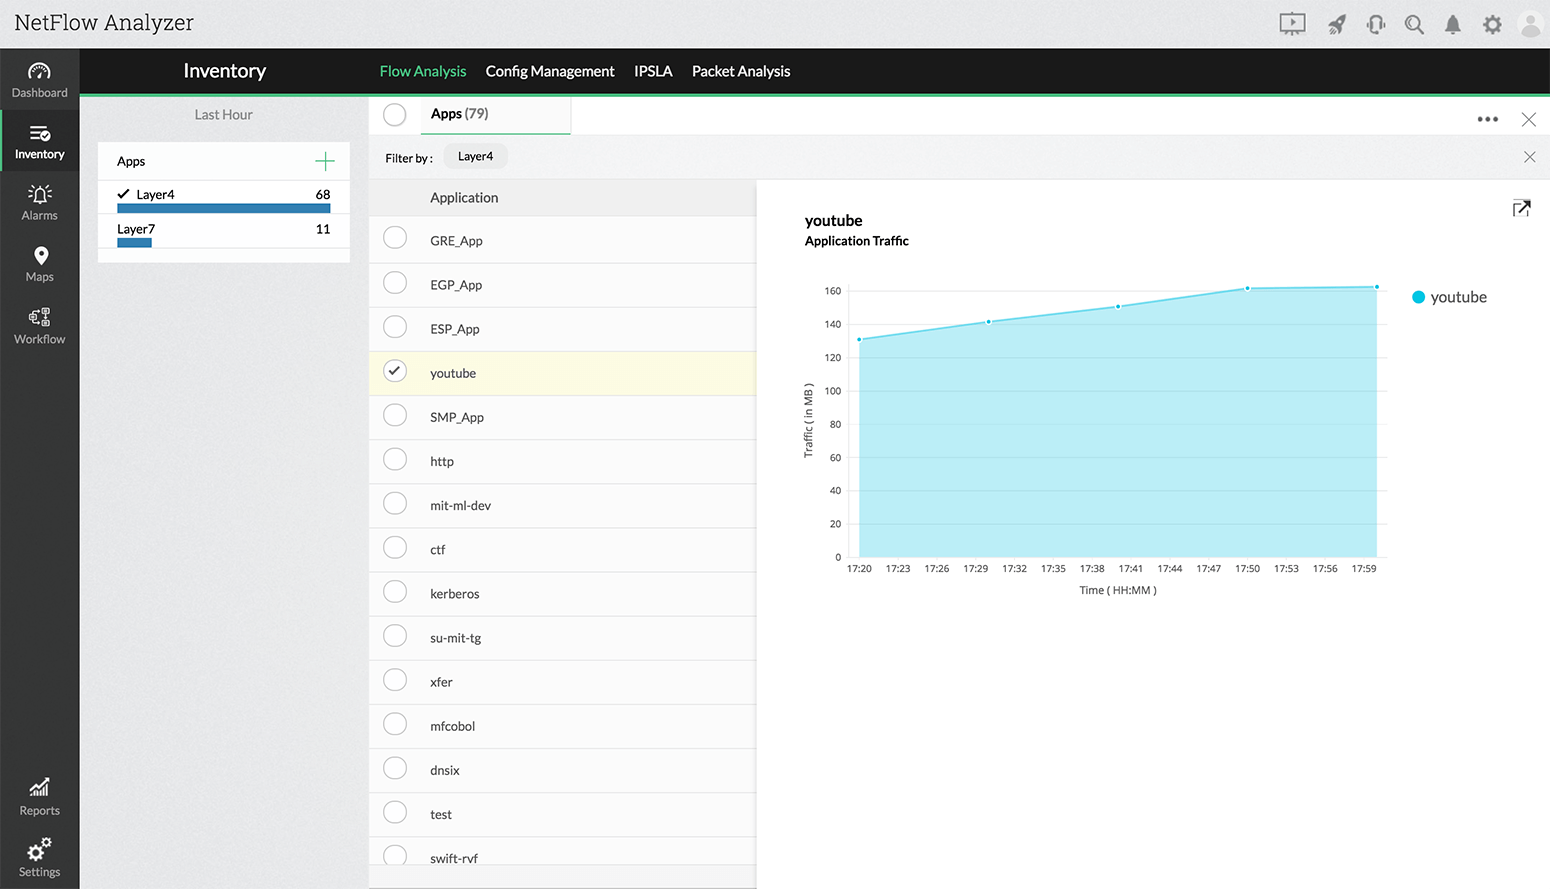 Bandwidth Management Tool - ManageEngine NetFlow Analyzer